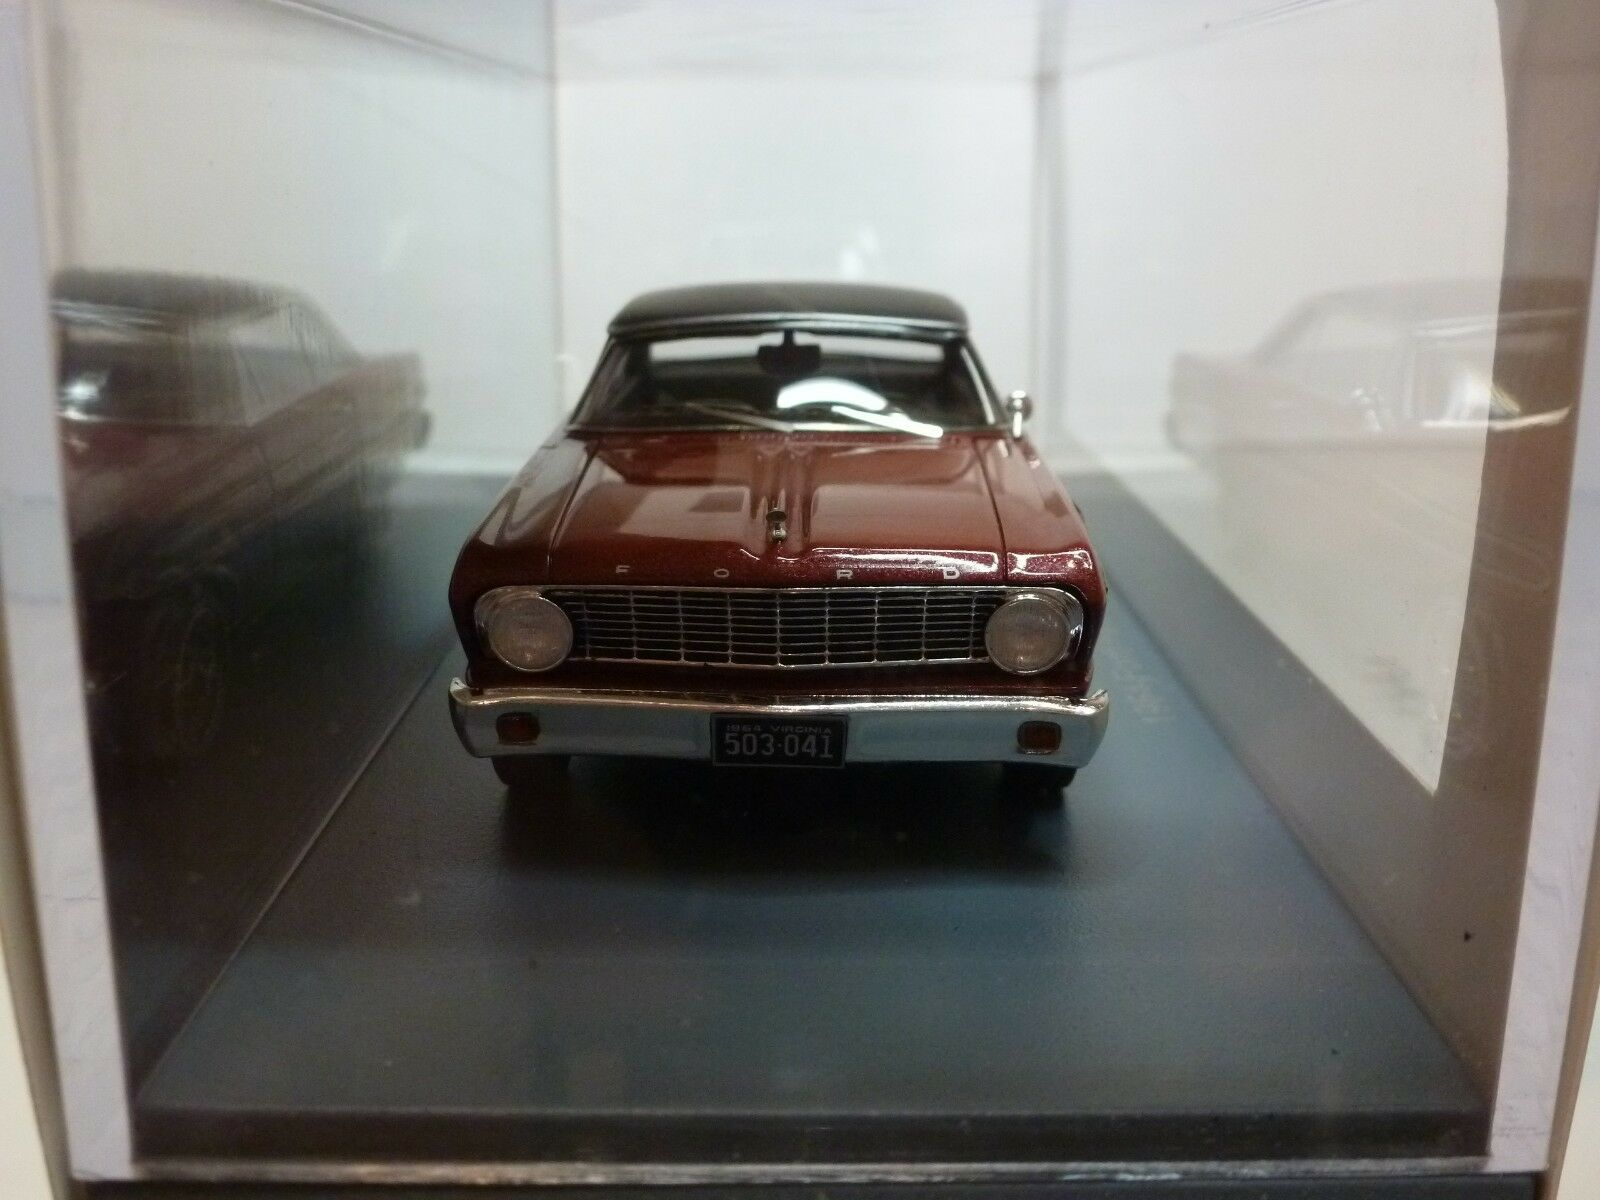 NEO MODELS 45674 FORD FALCON FUTURA SPRINT SPRINT SPRINT 1964 BURGUNDY 1 43 - VERY GOOD IN BOX 375f8e